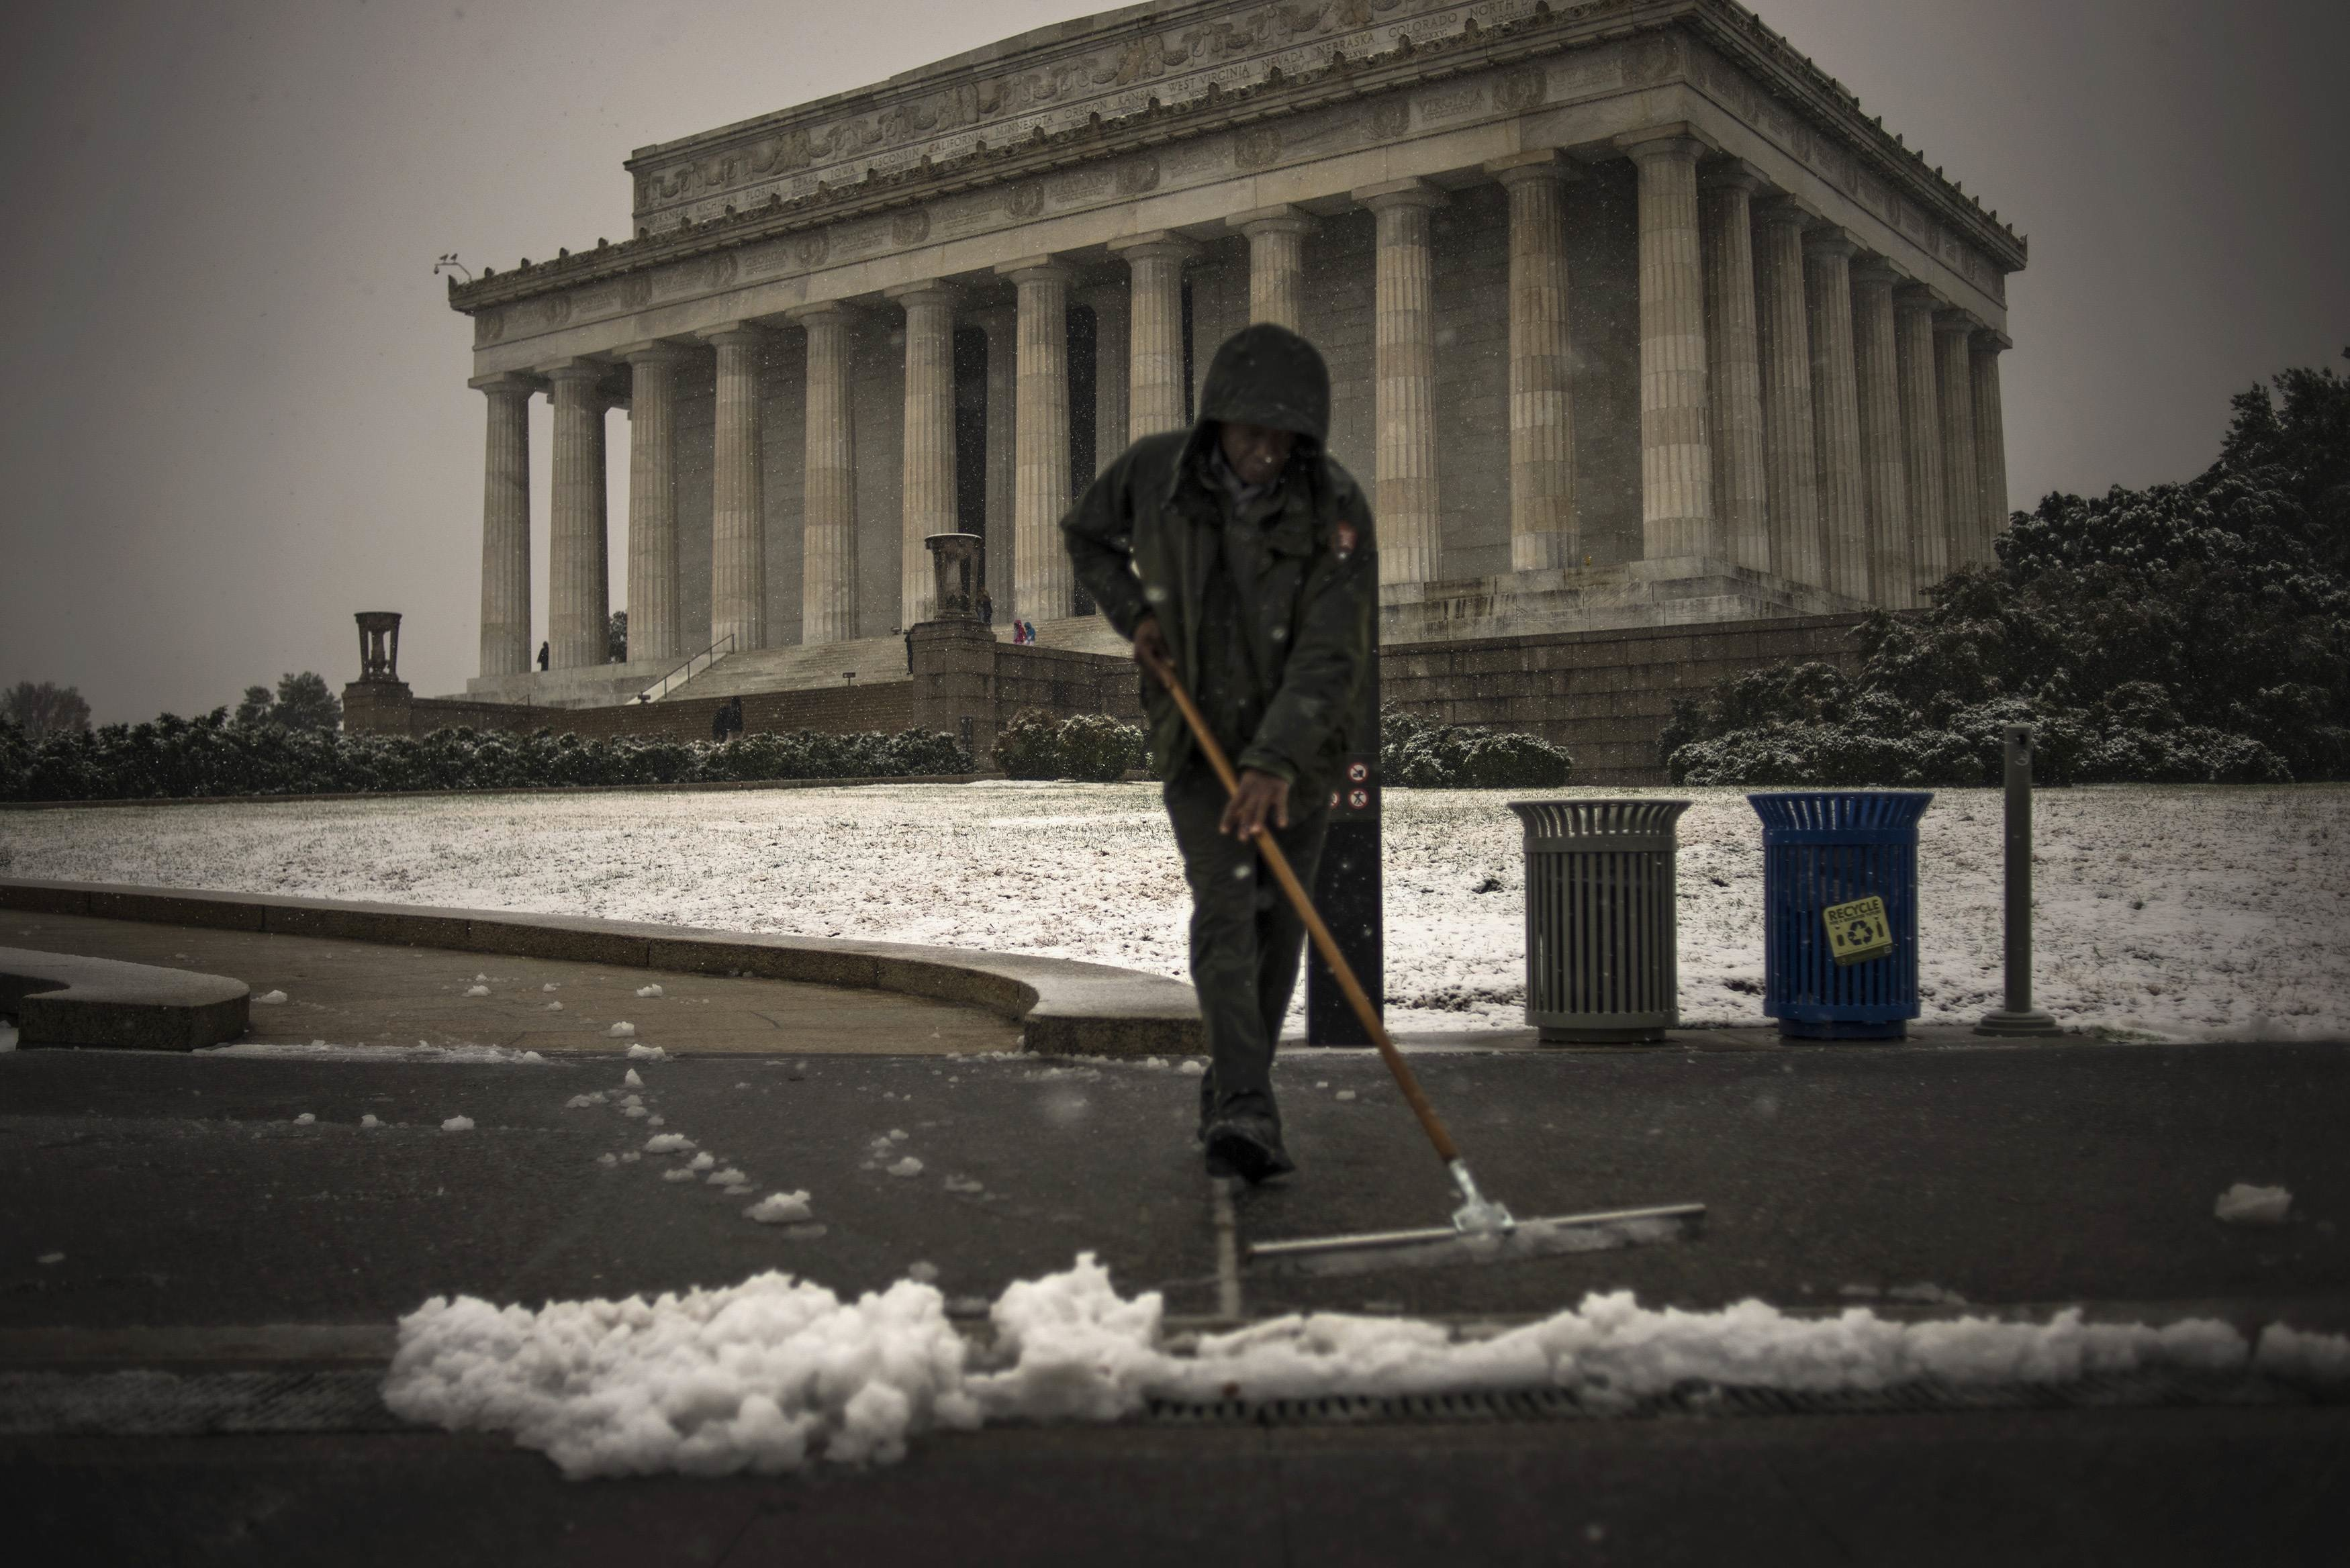 A National Park Service employee clears snow and slush from a walkway to the Lincoln Memorial in Washington